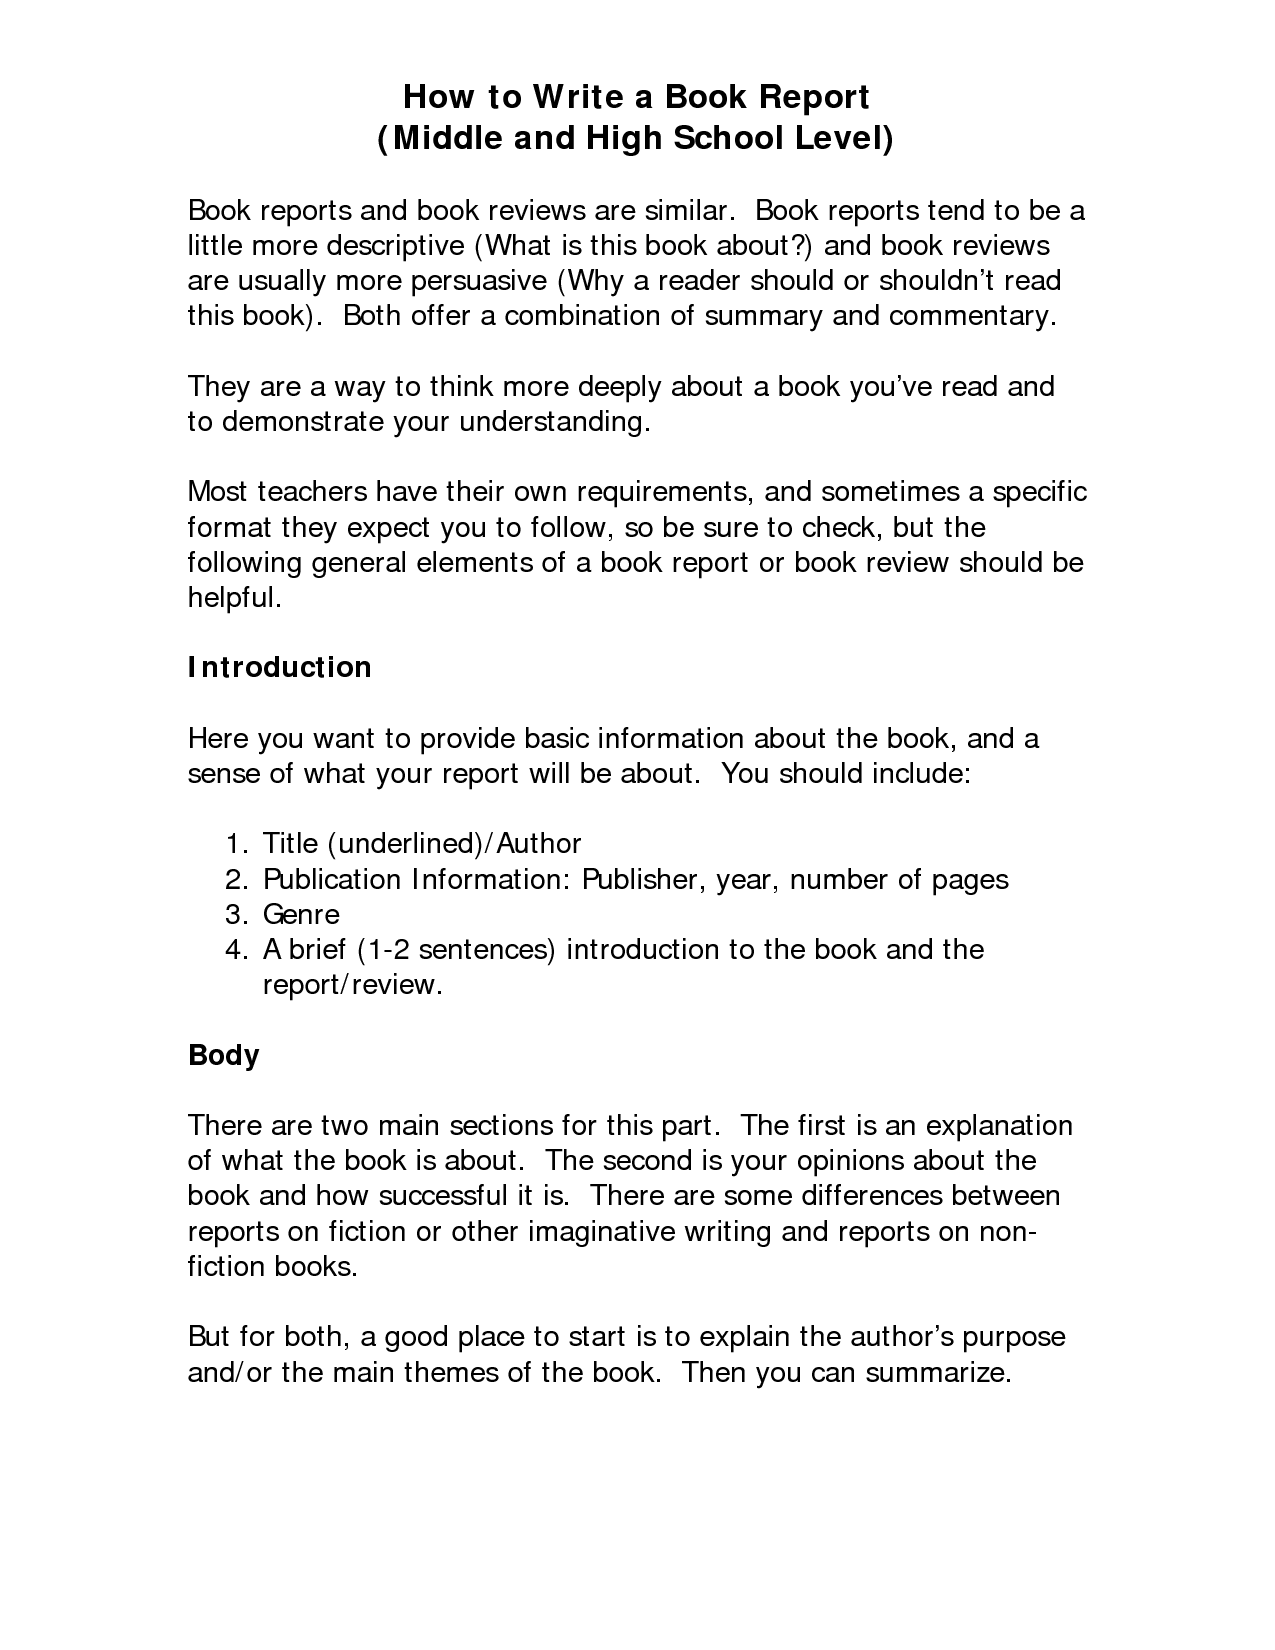 how to write a book report for high school the canterbury tales how to write a book report for high school the canterbury tales essay